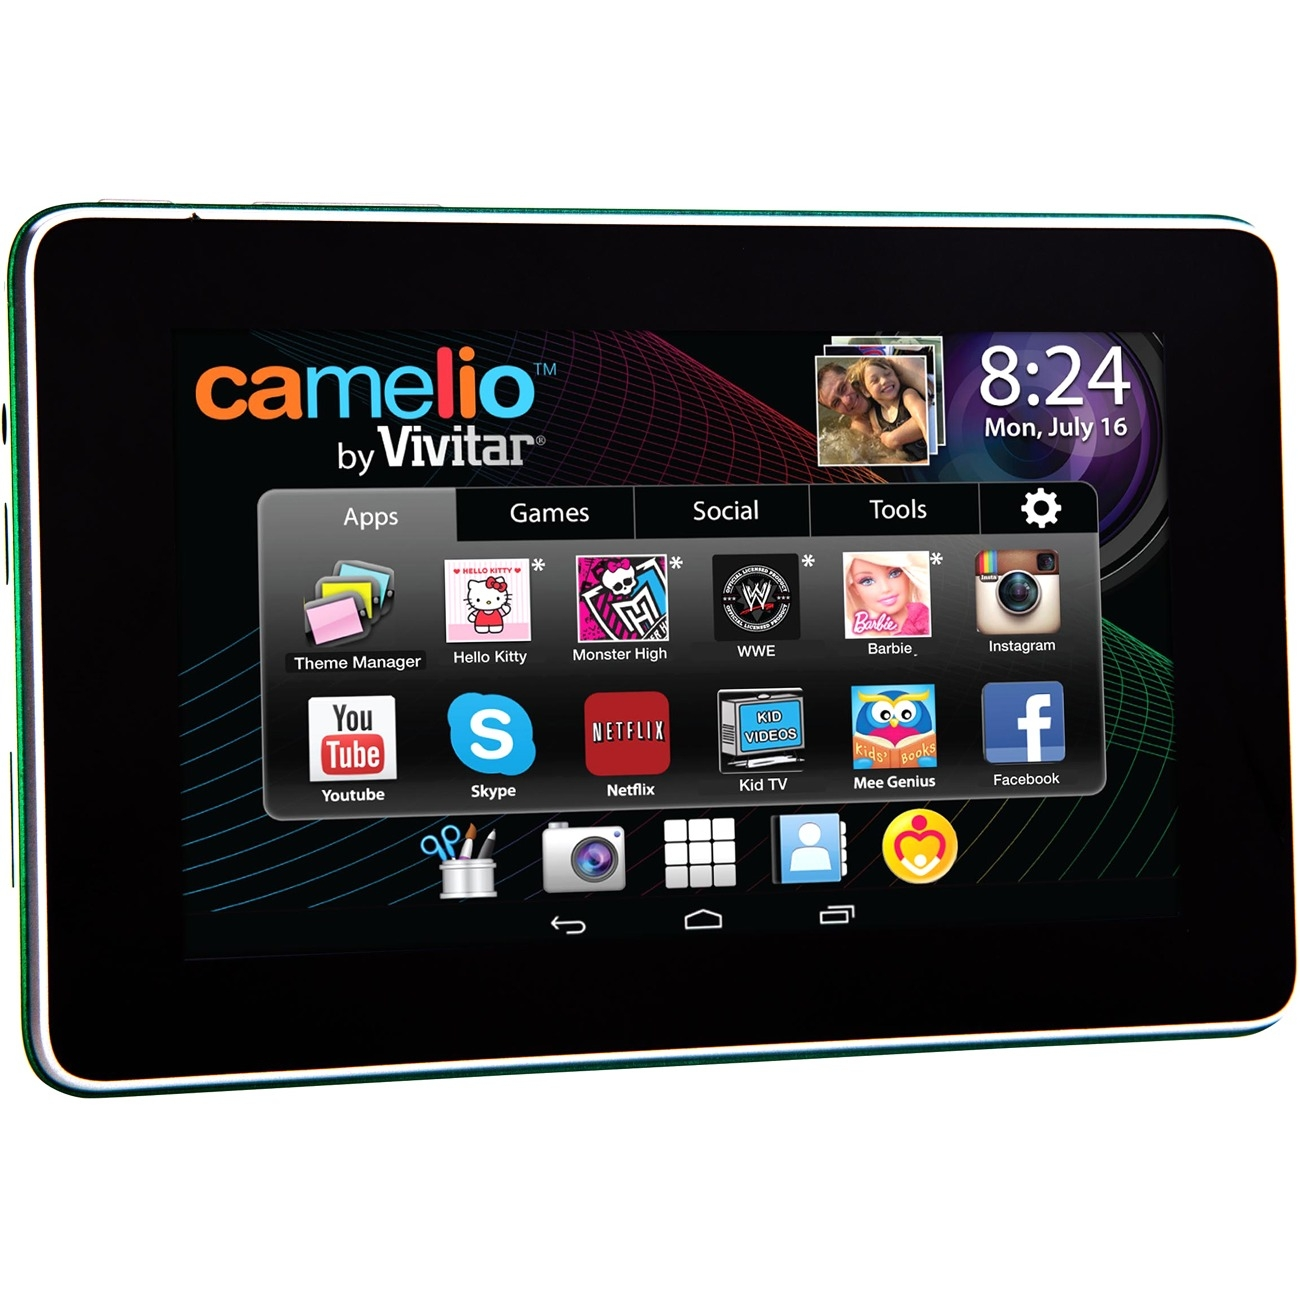 "Sakar Camelio 2 Mini 4.3"" Tablet - Tablet - Mini - Android 4.3 - Google Play - Preloaded Games - Hd Video - Built In Wifi - Educational Tools - Parental Controls - Safe Web Surfing - Battery (cam-430)"